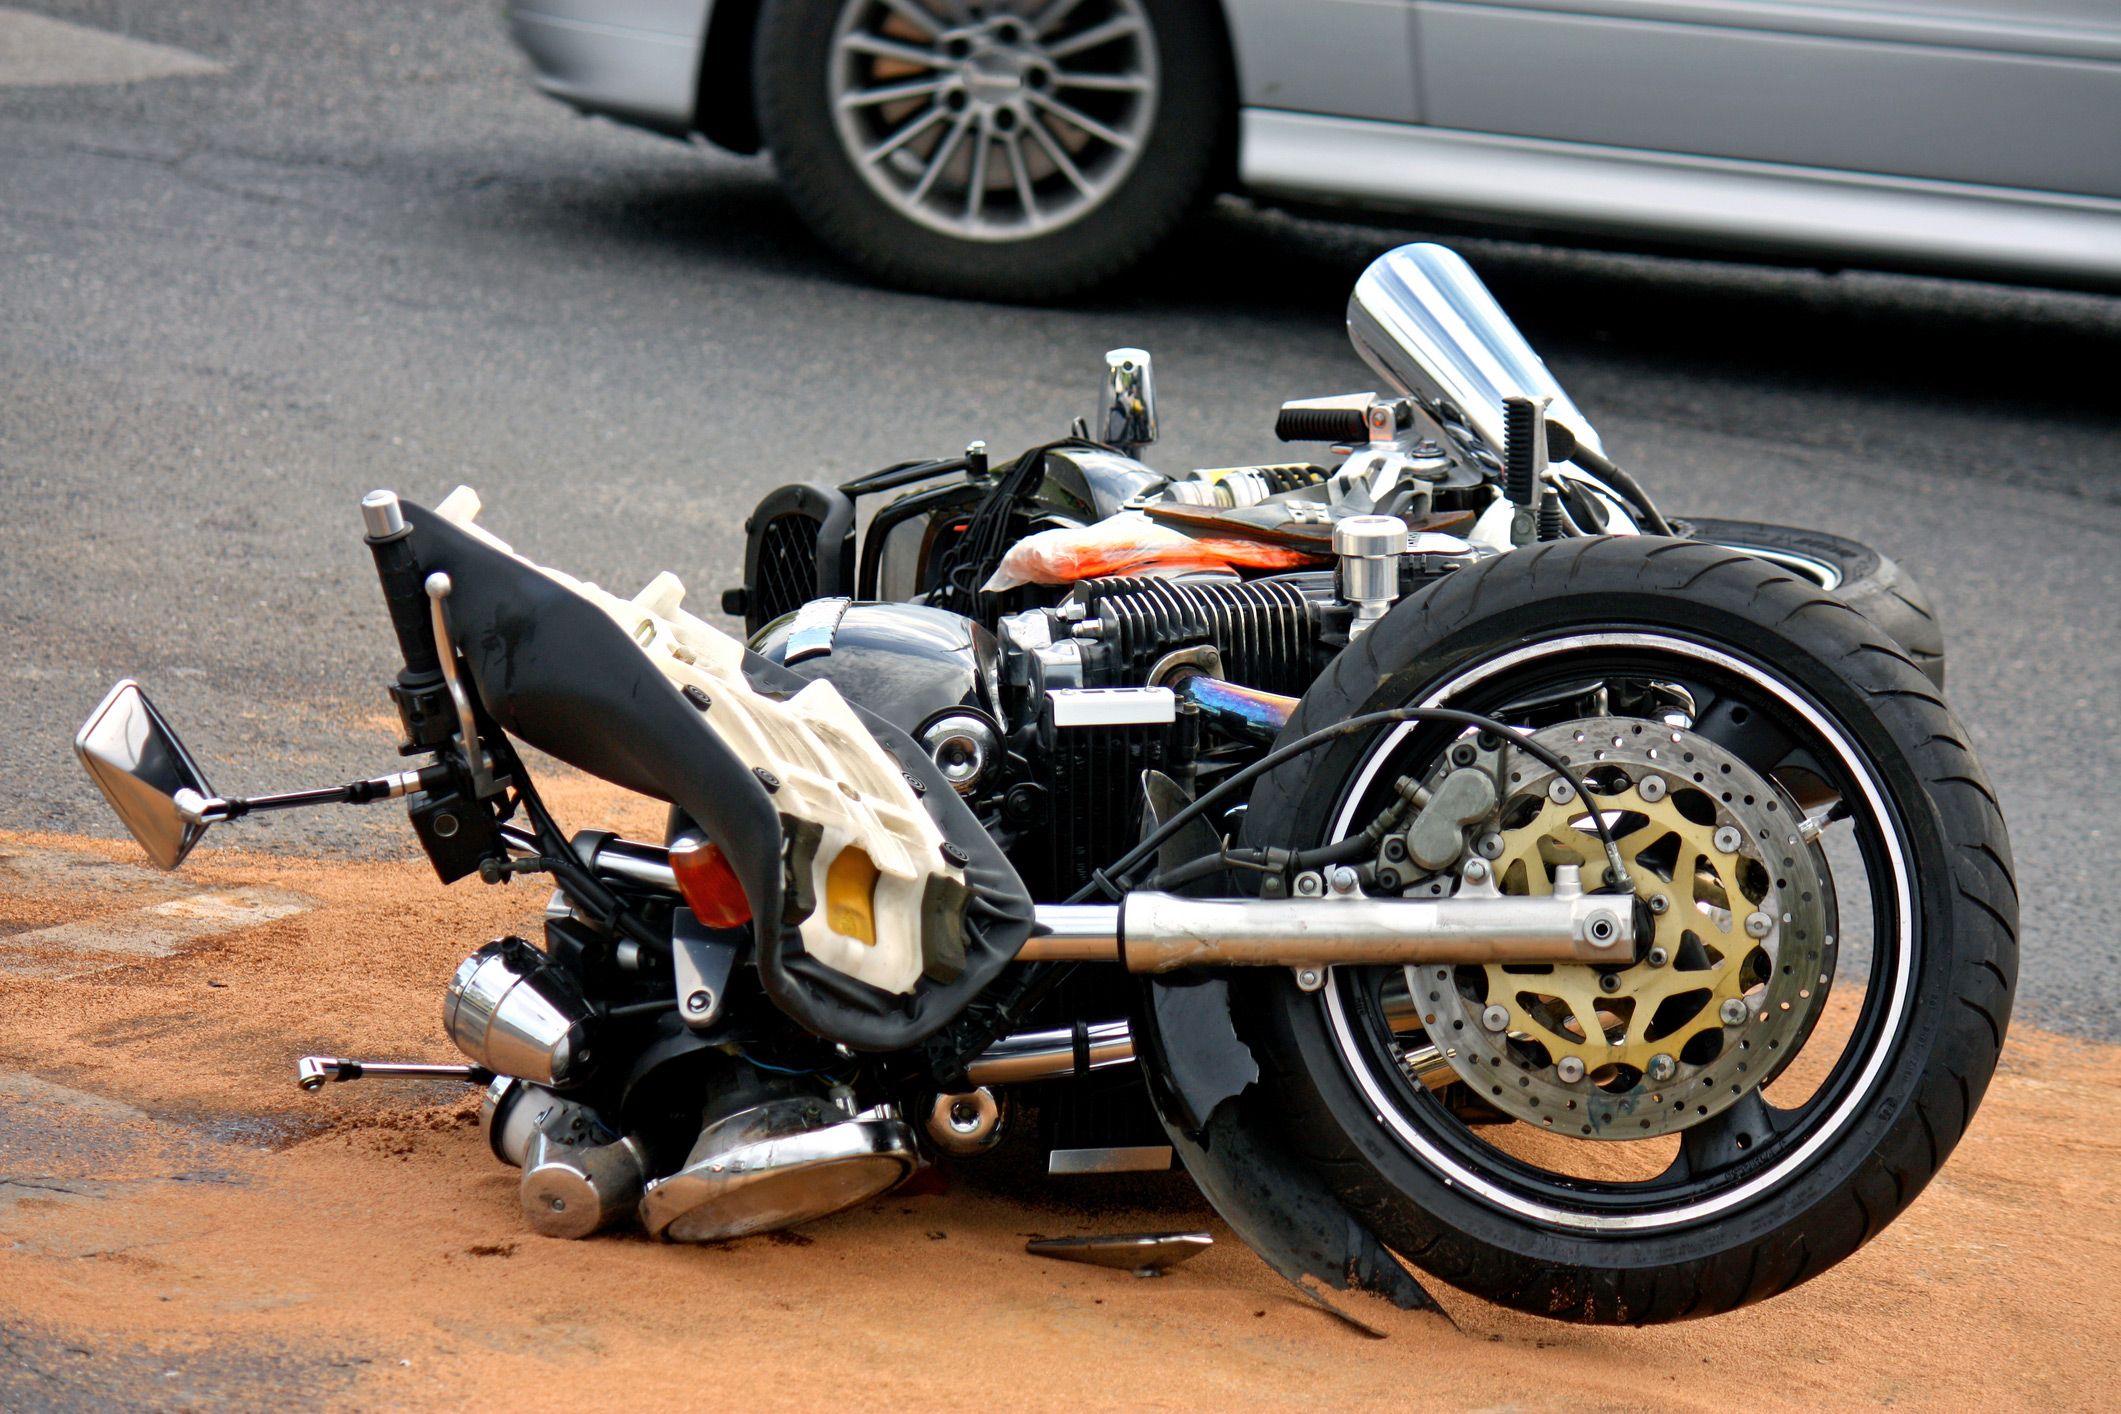 Crashed Motorcycles For Sale